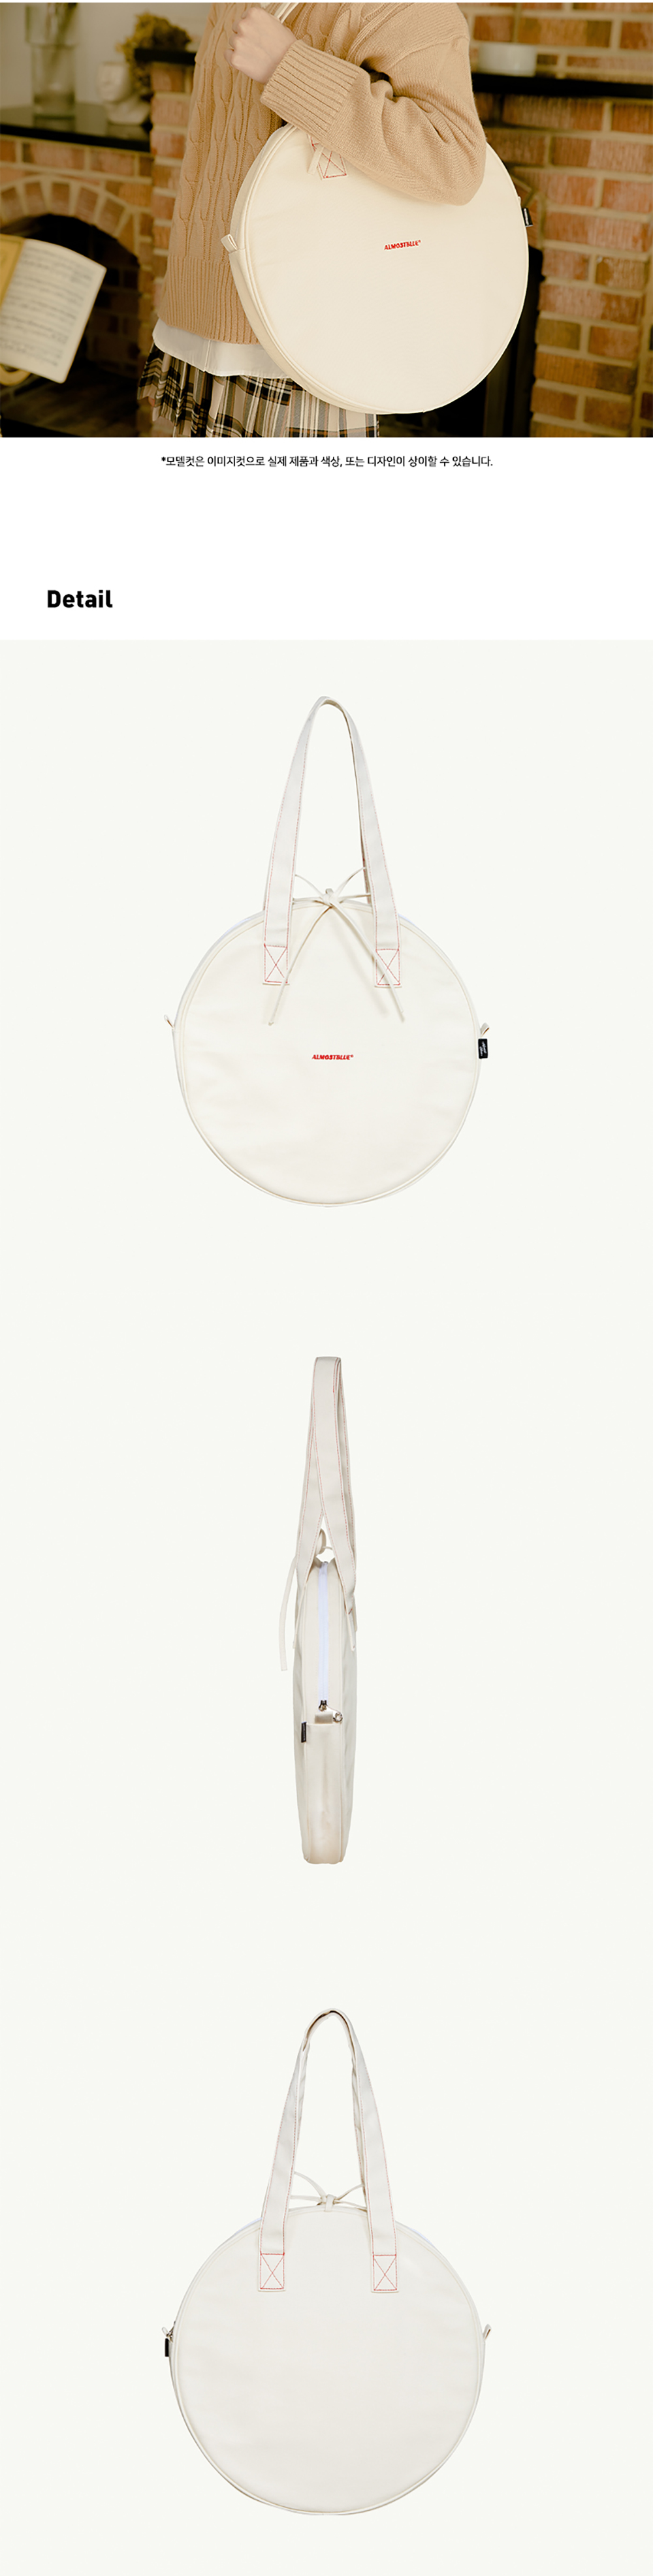 fullmoon eco bag 3.jpg